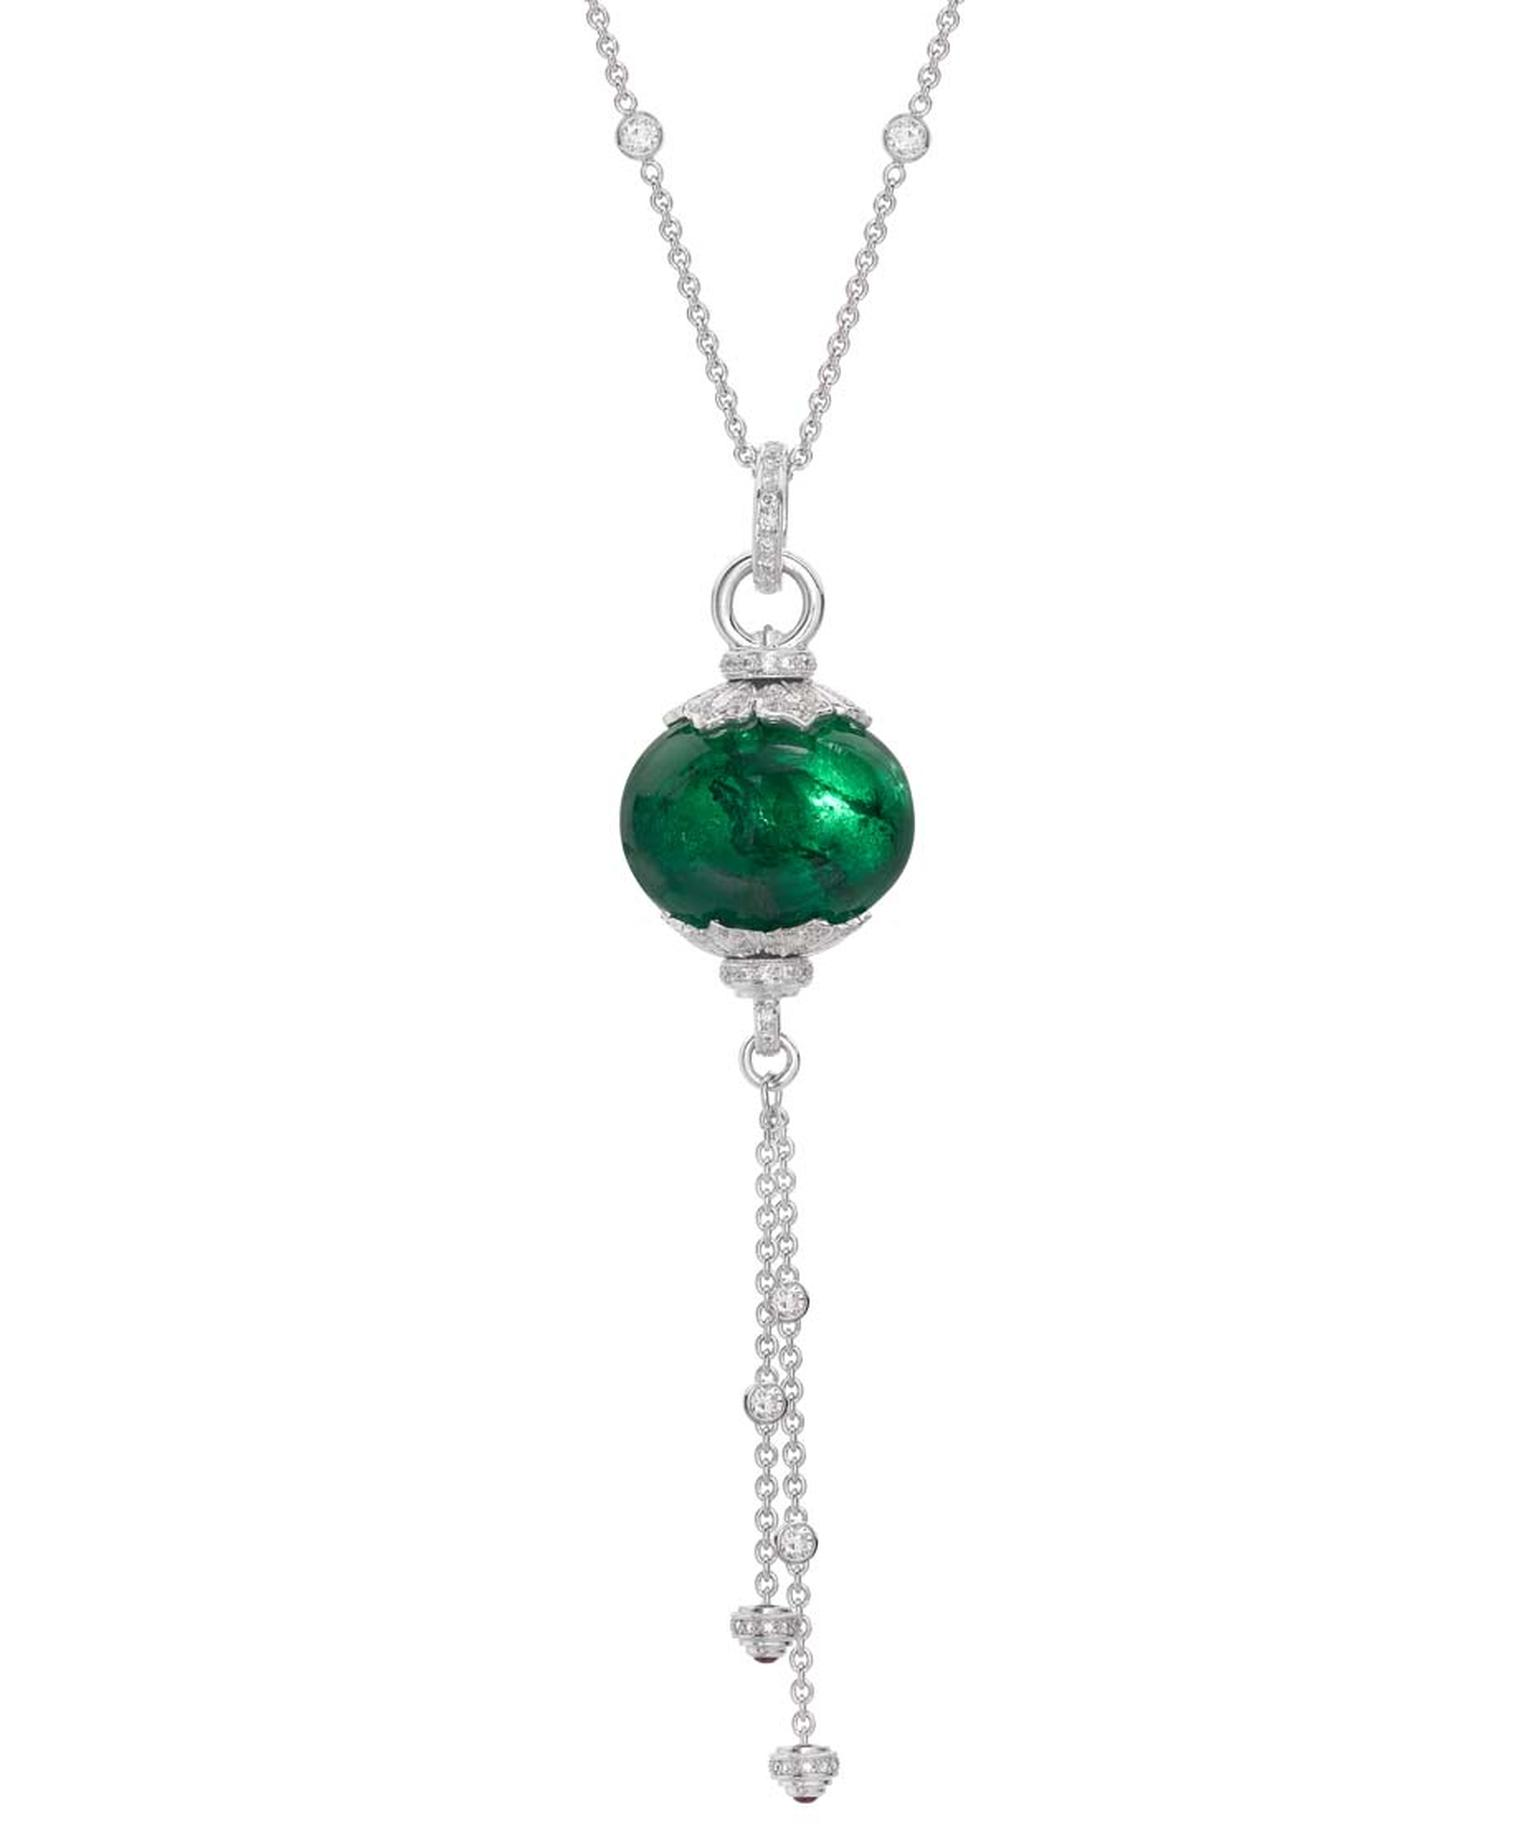 Theo Fennell white gold necklace with pavé diamonds and a Gemfields emerald bead necklace (65.30ct).